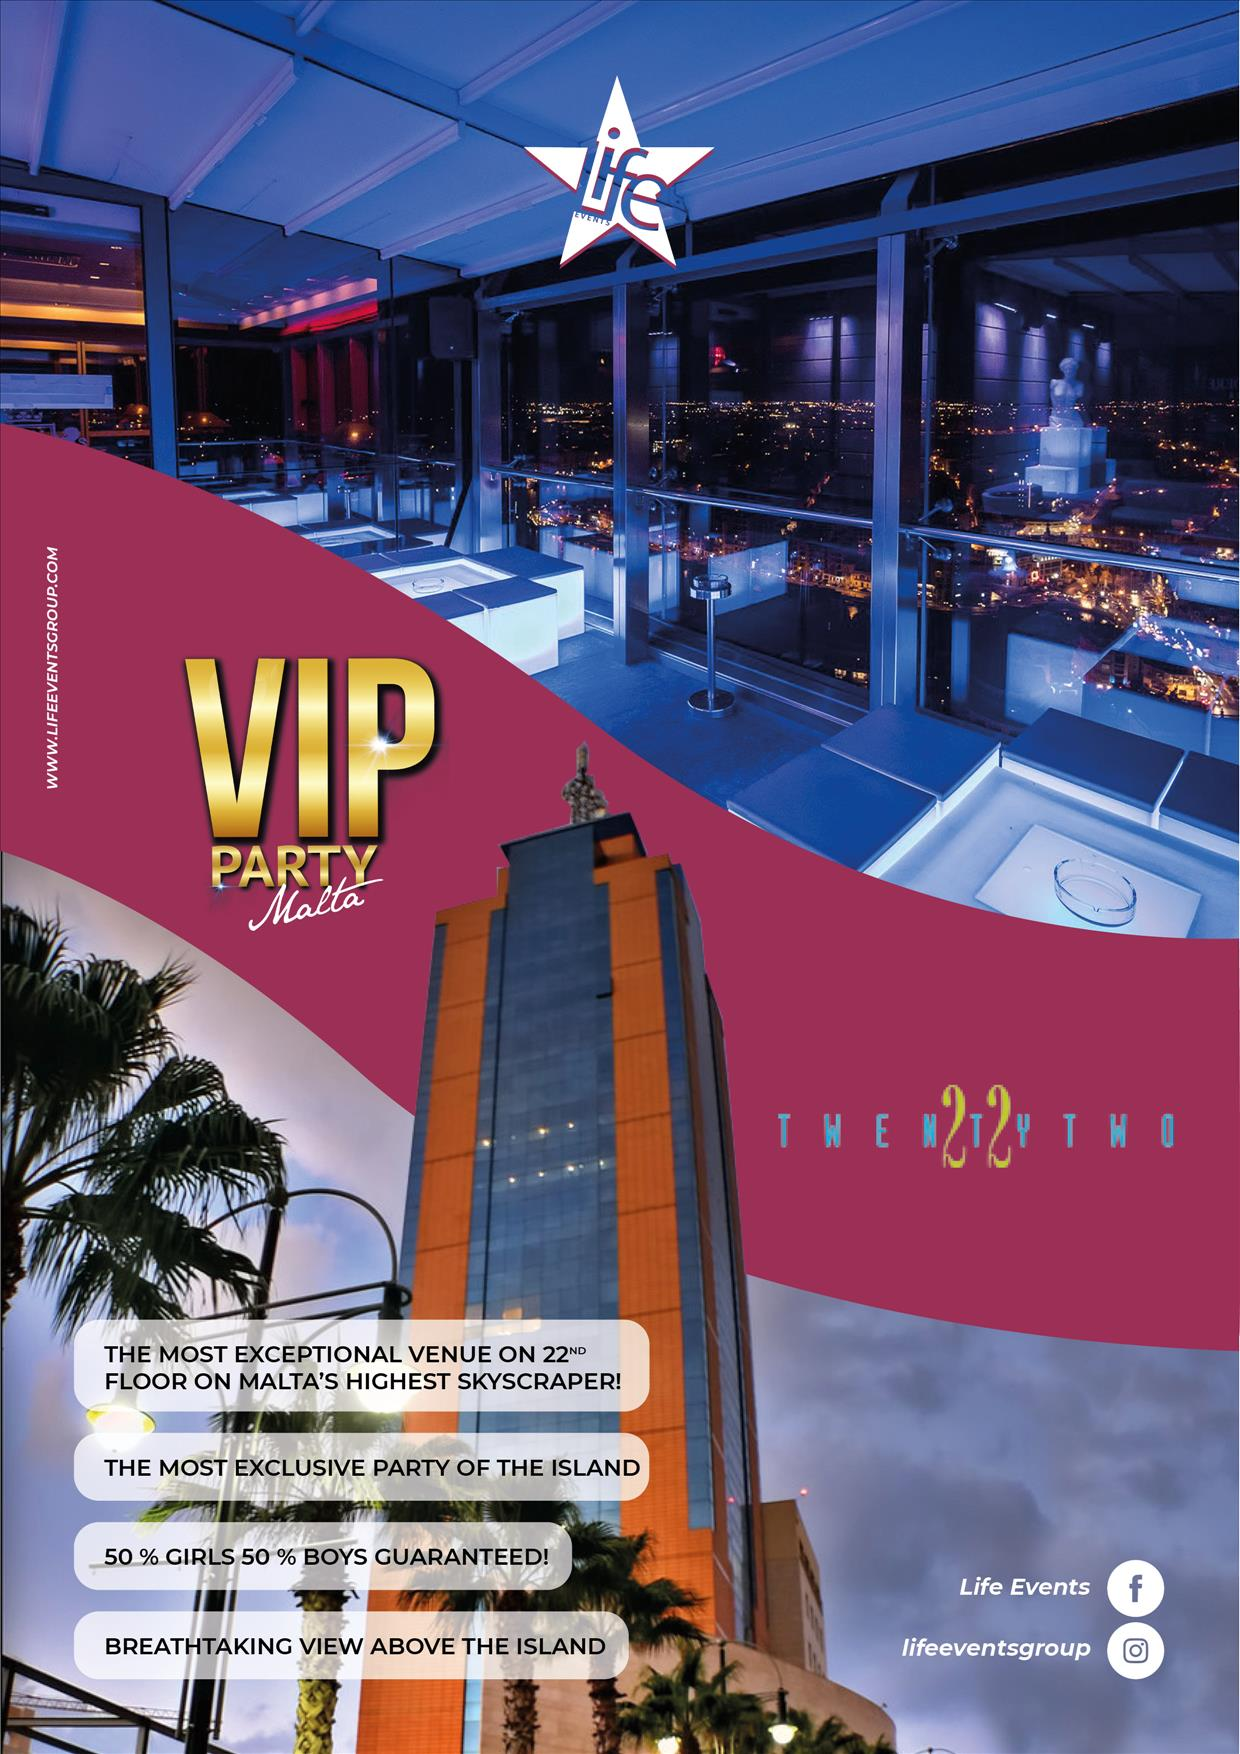 VIP Party Malta by Life Events